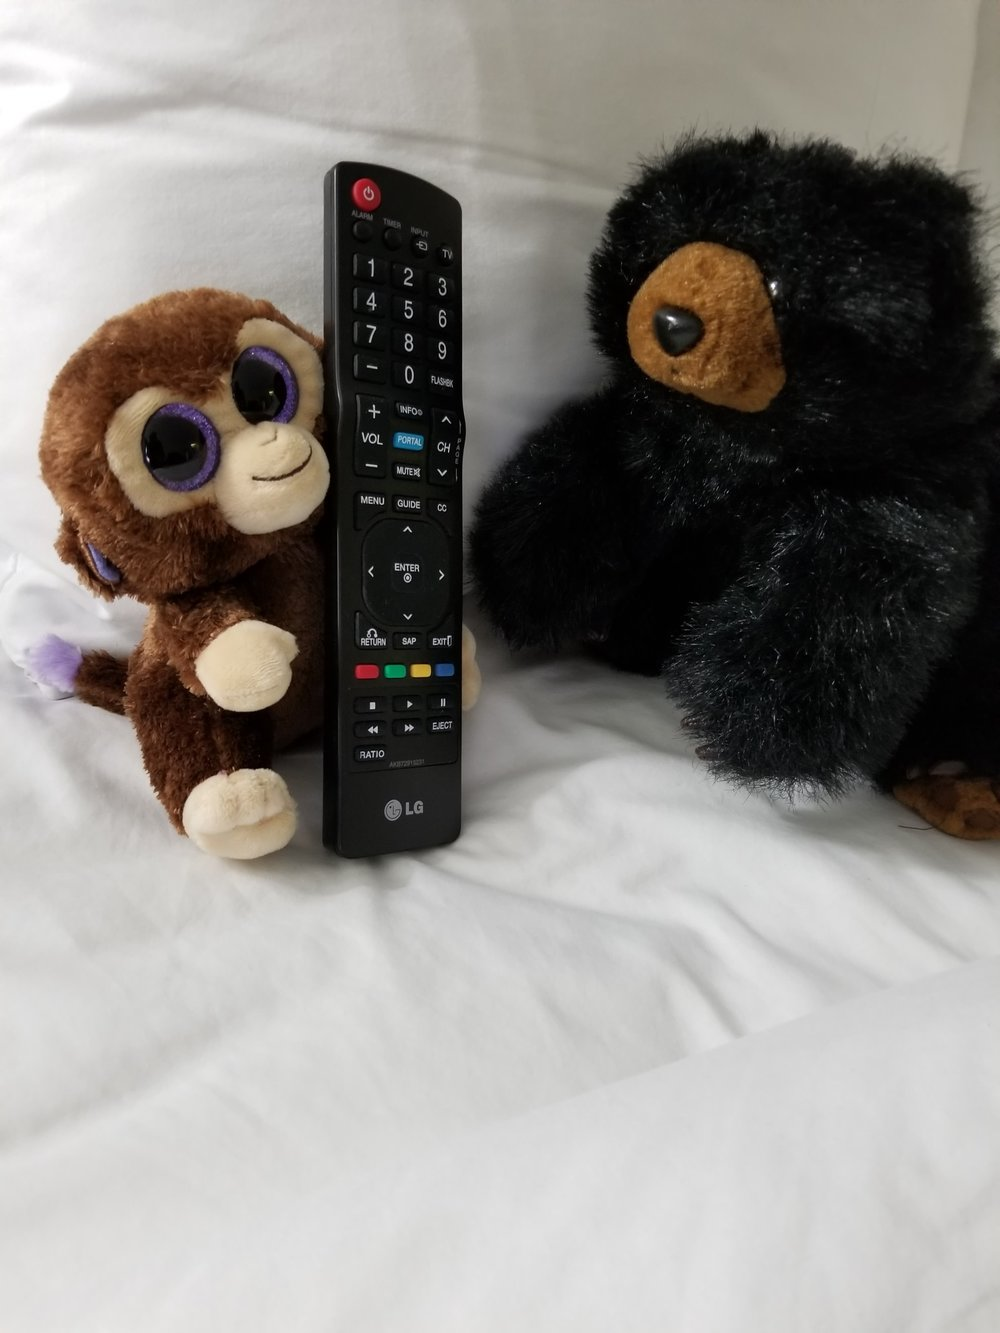 Hannah the Monkey stole the remote from Sammy!